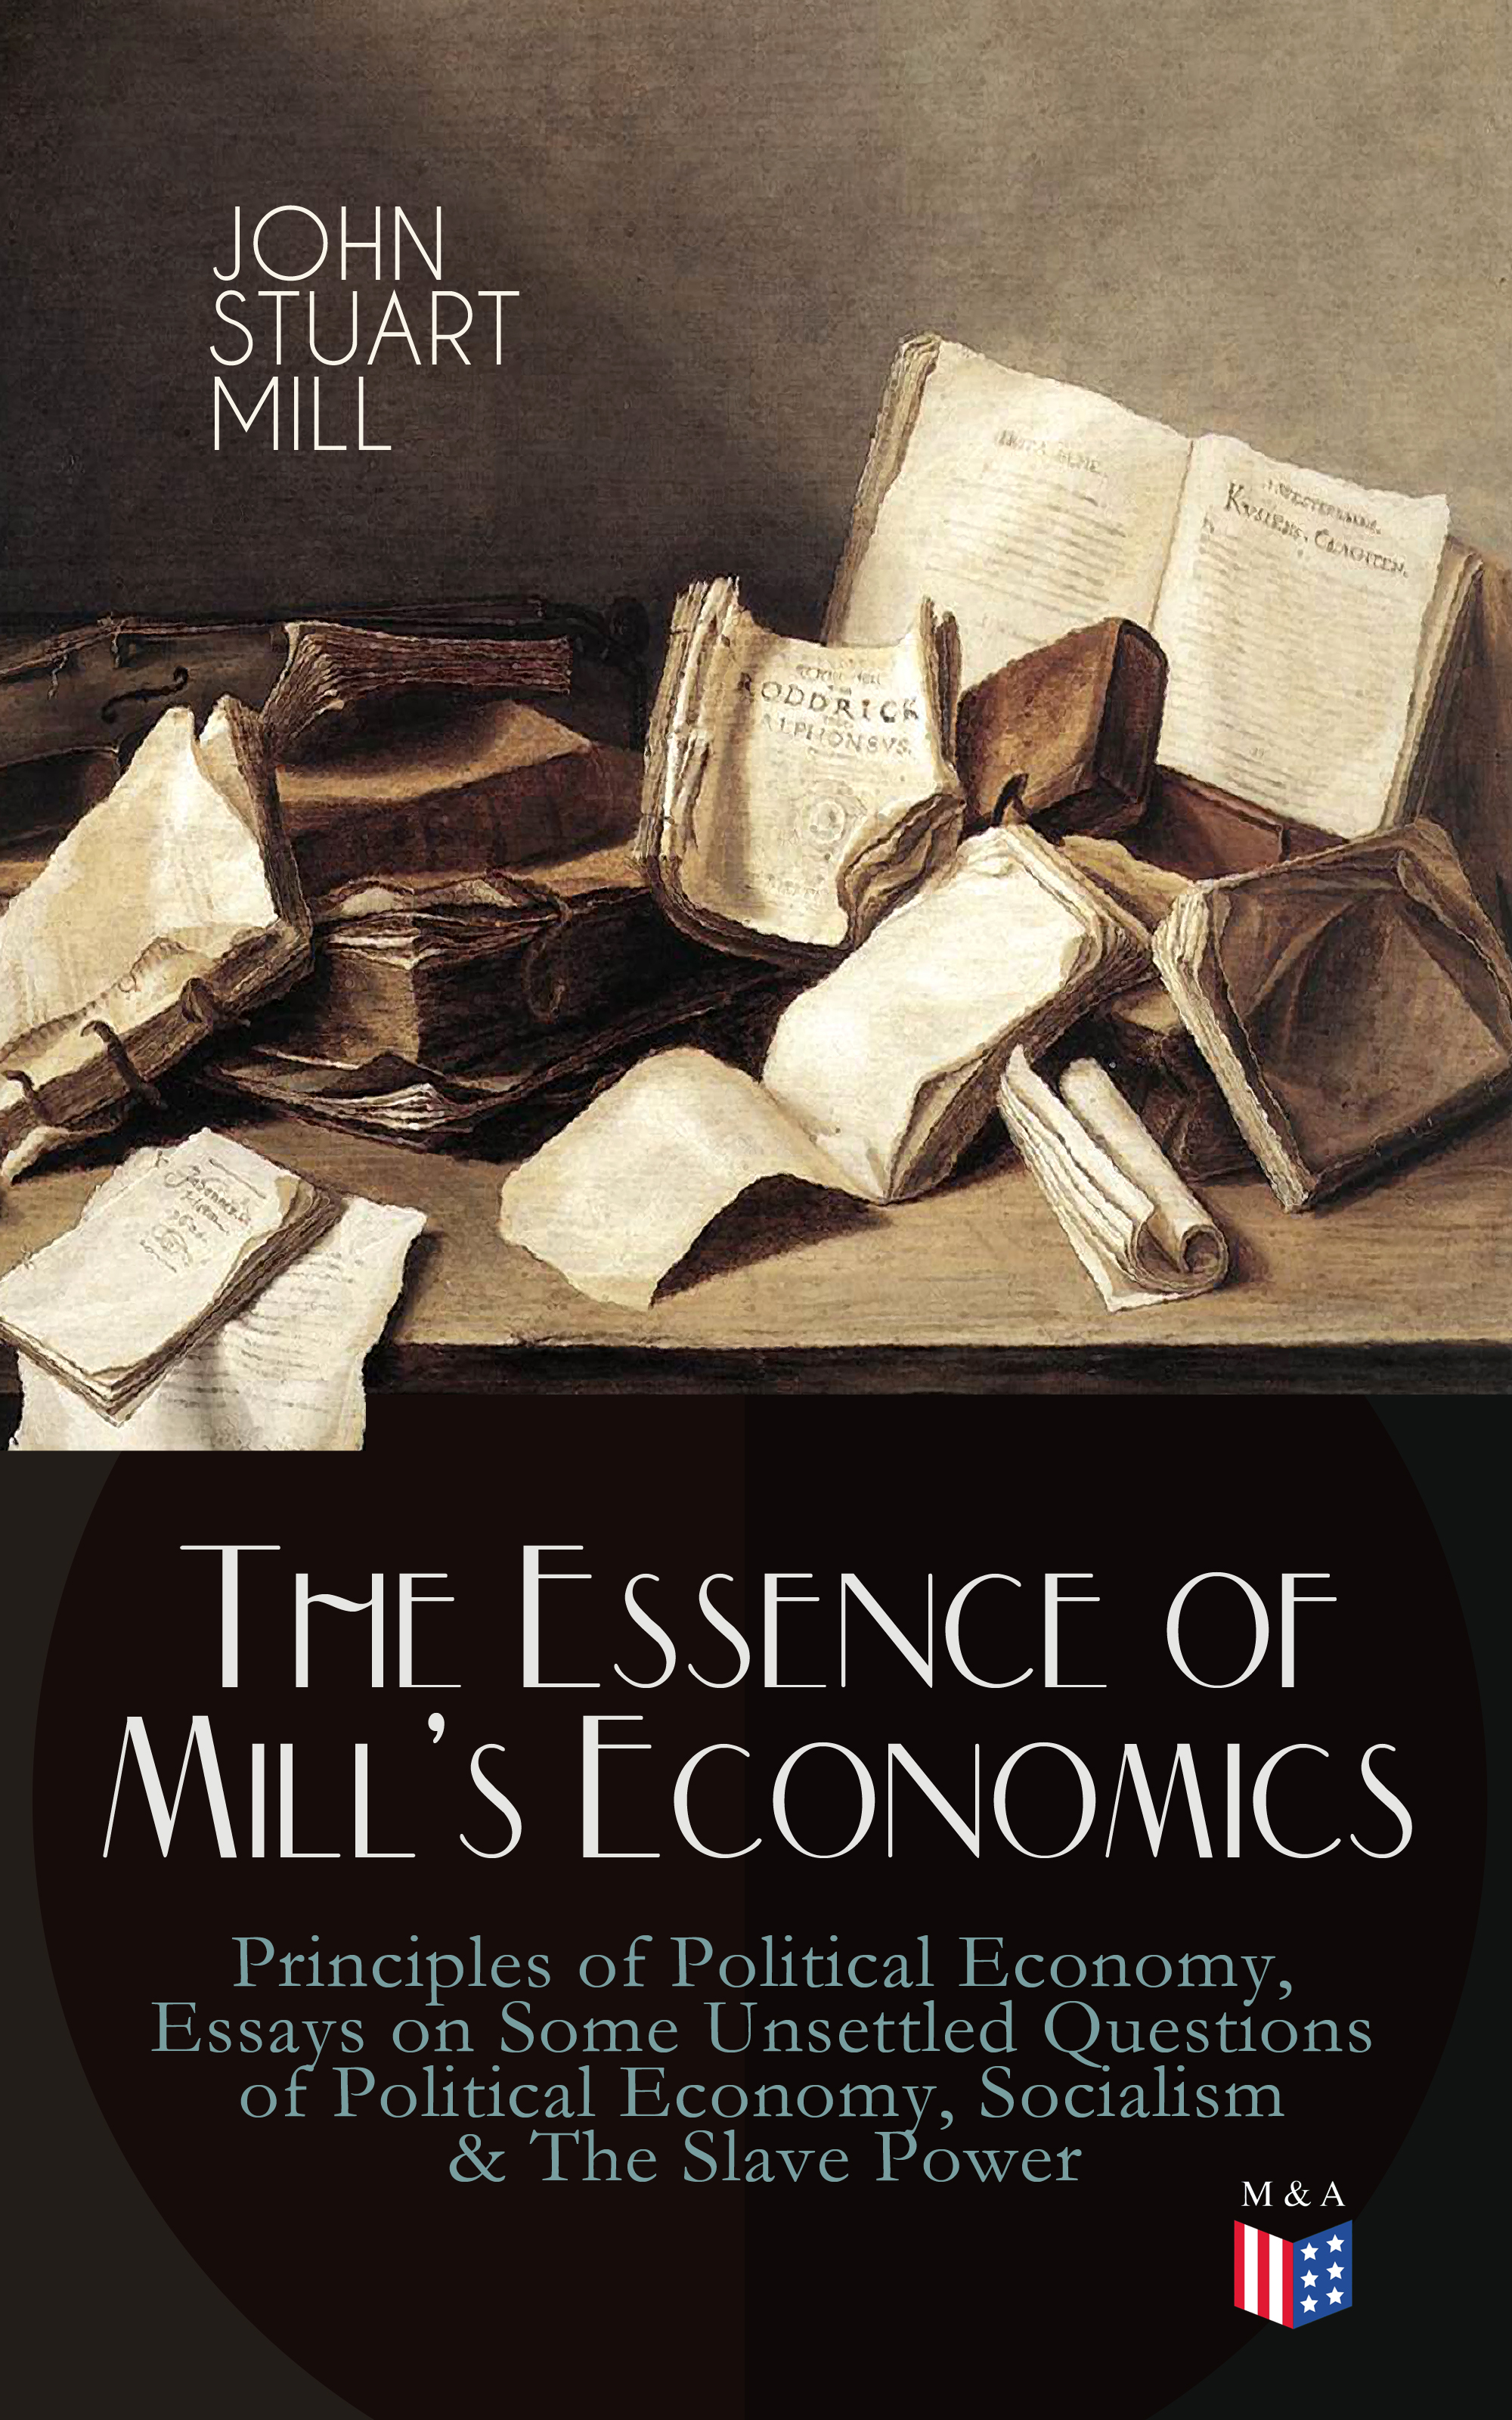 John Stuart Mill The Essence of Mill's Economics: Principles of Political Economy, Essays on Some Unsettled Questions of Political Economy, Socialism & The Slave Power economics for policy making selected essays of arthur m okun